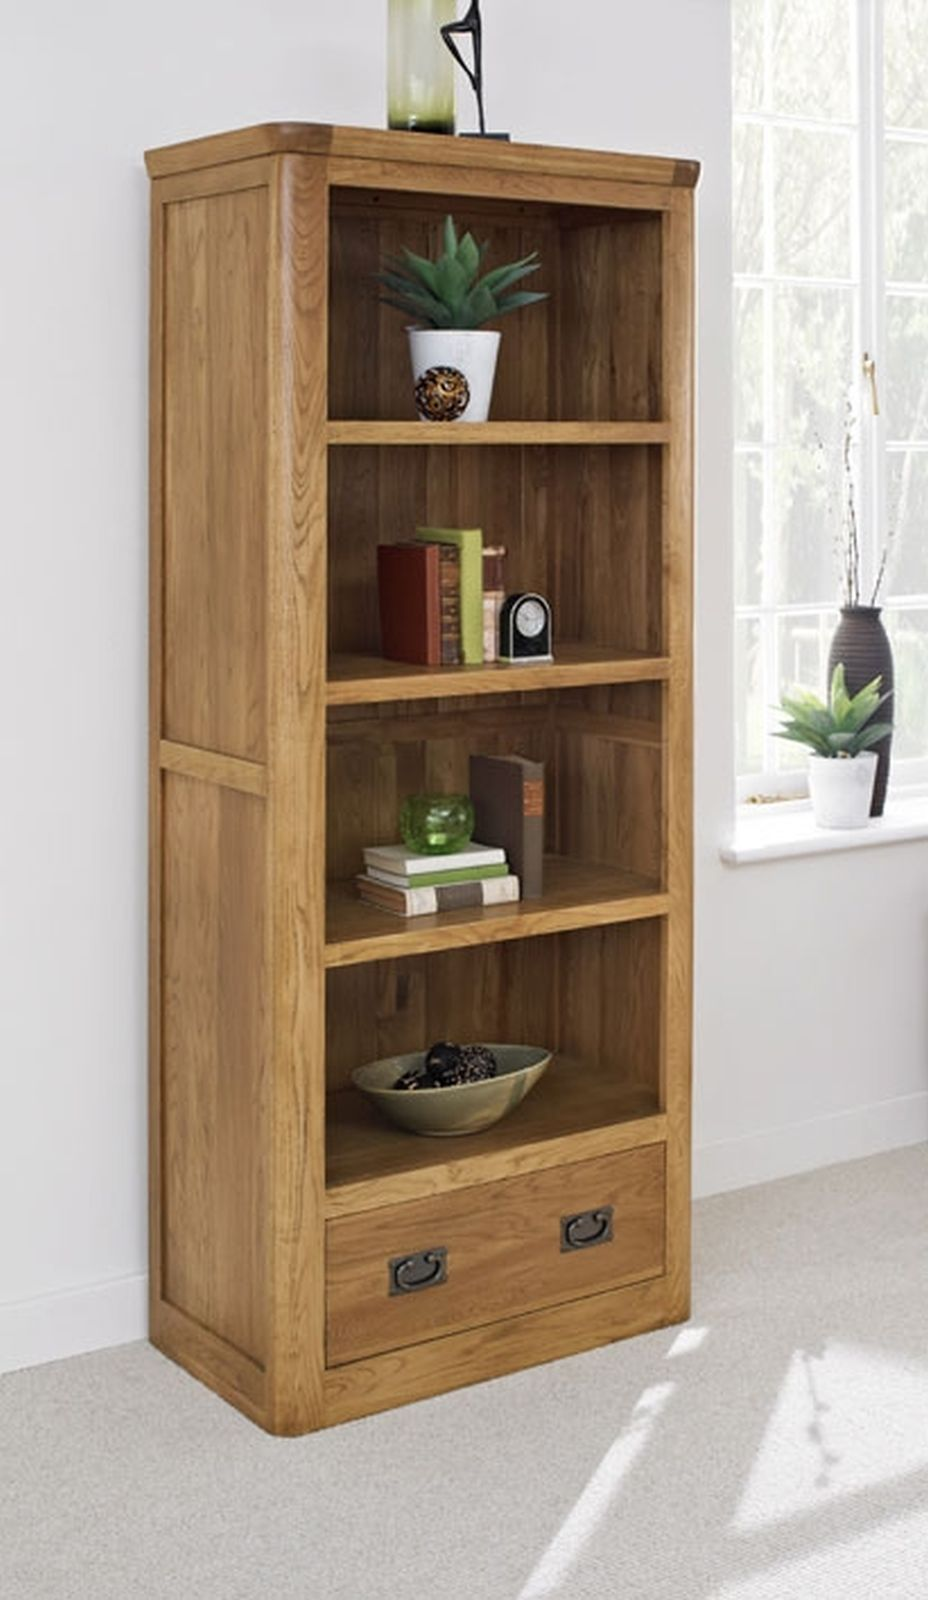 Dalmore solid oak bedroom furniture large bookcase with for Small bedroom bookcase